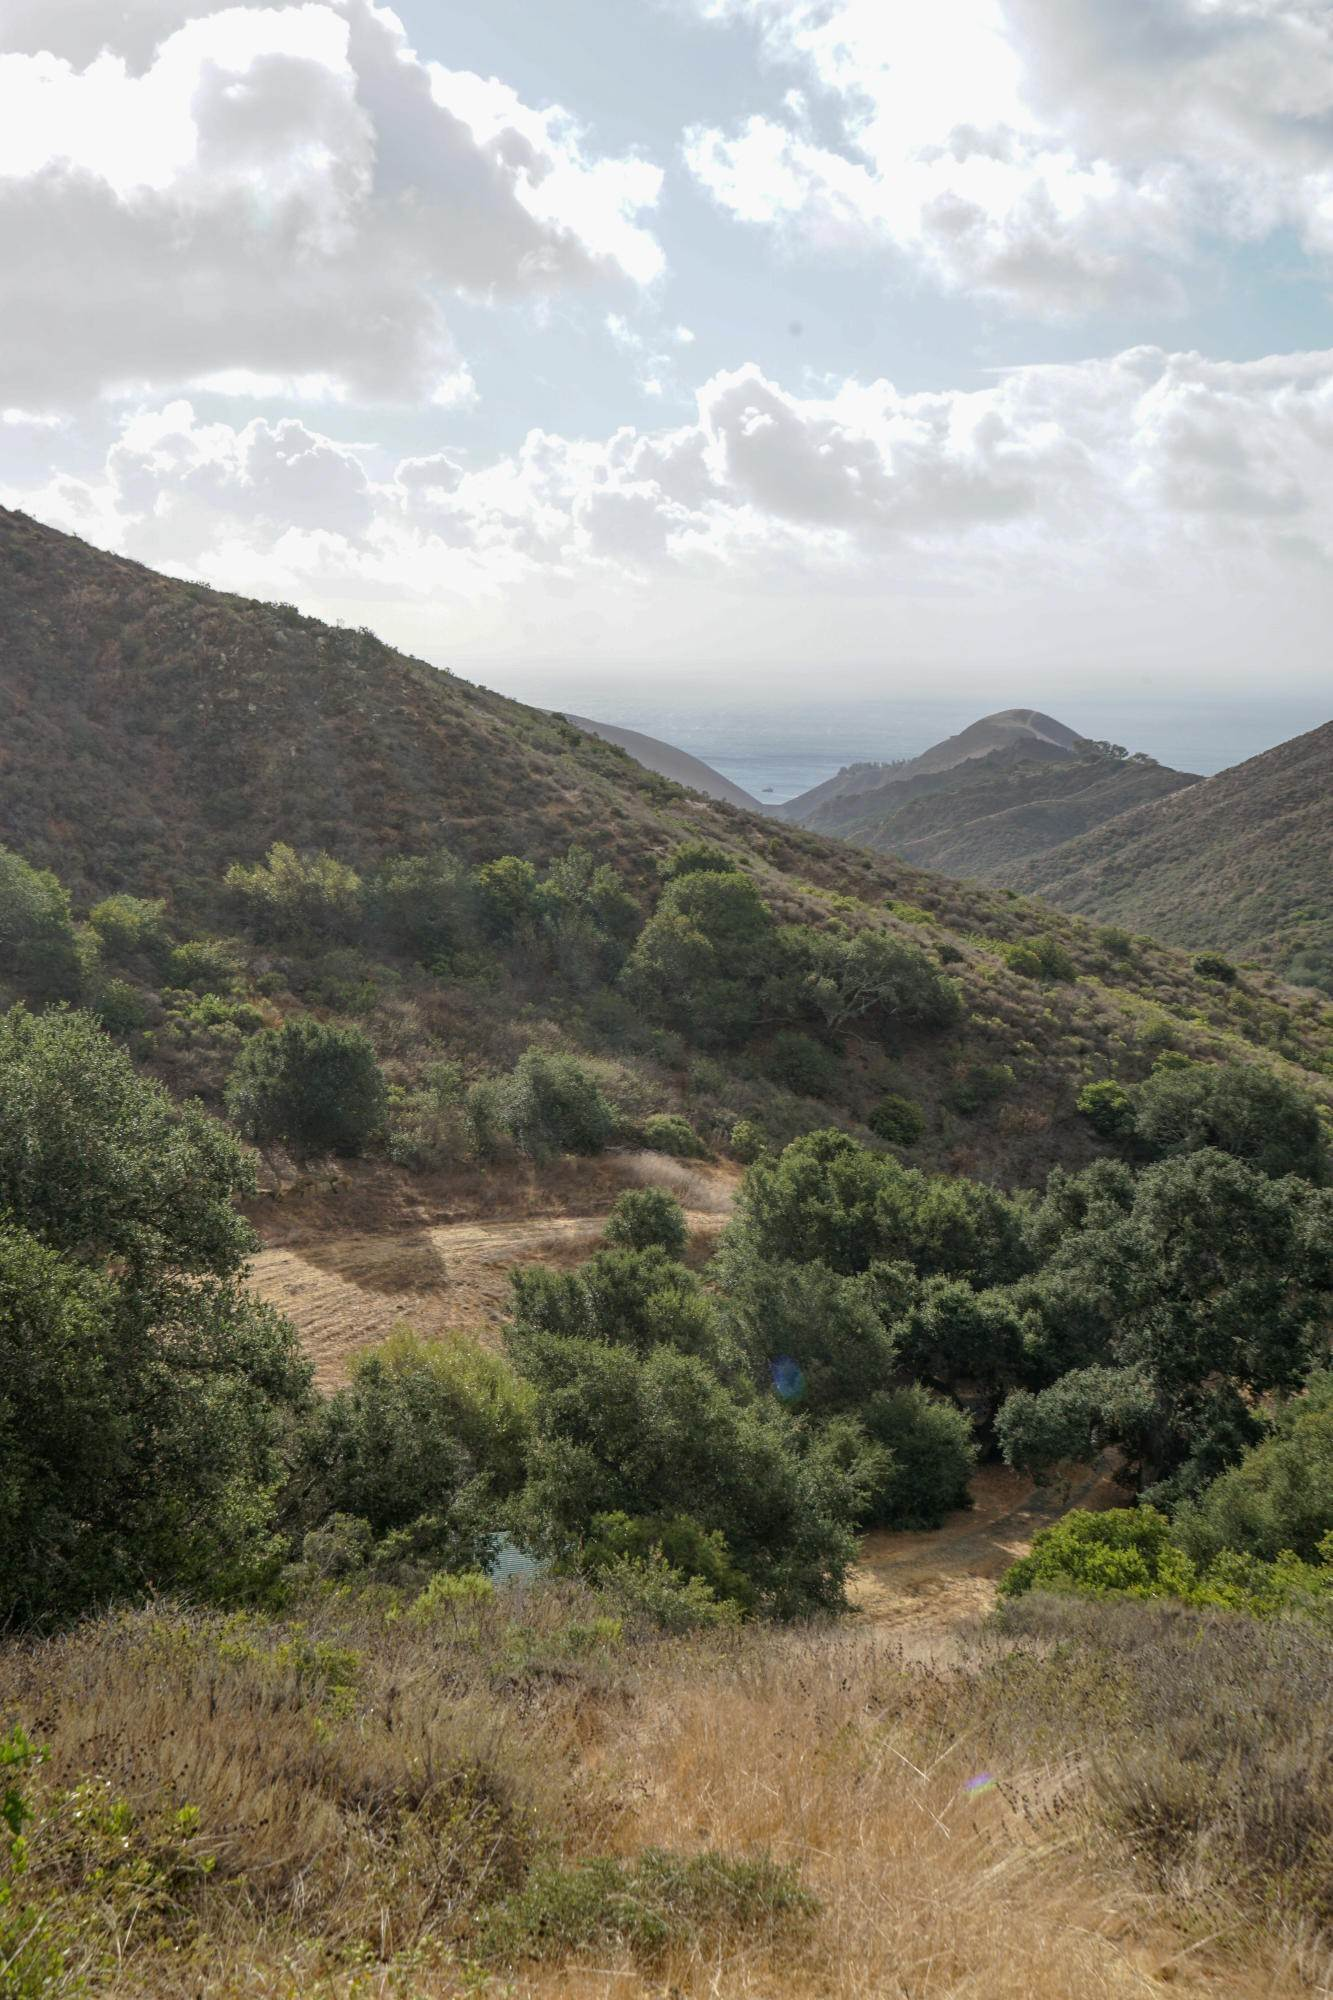 Lots / Land for Sale at 97 Hollister Ranch Gaviota, California 93117 United States